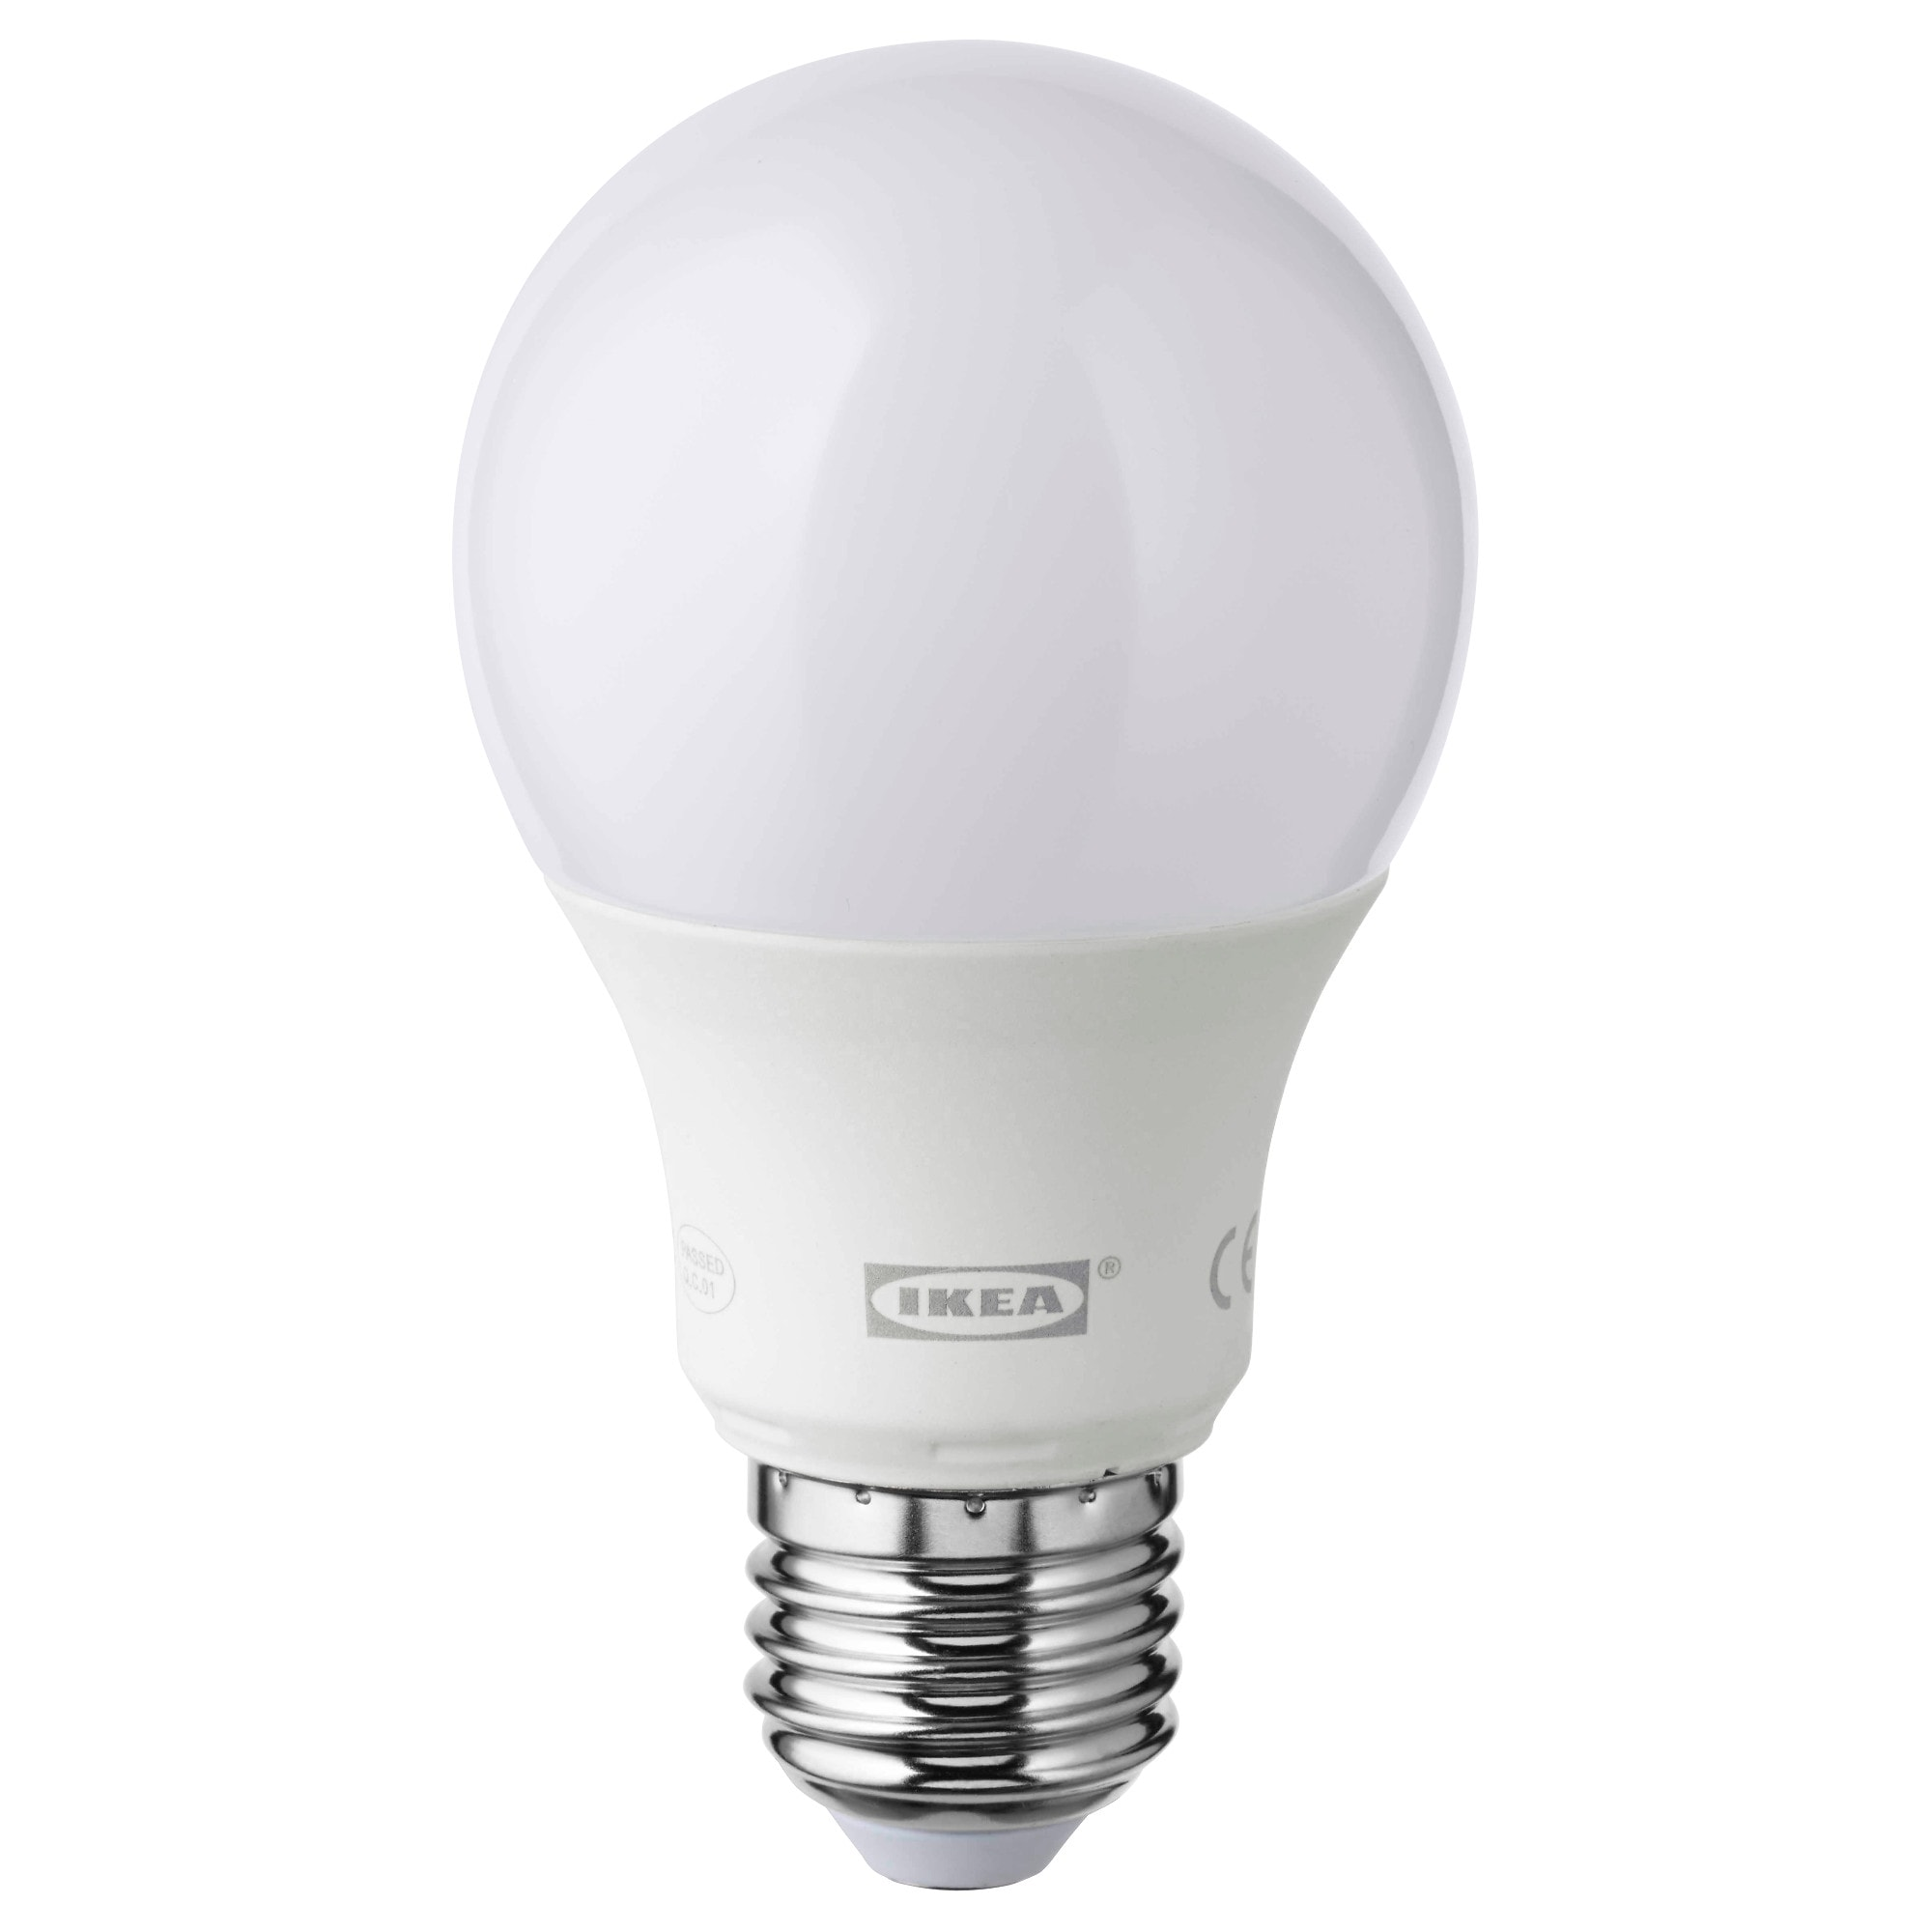 Led lampen led leuchten gnstig online kaufen ikea ledare led lampe e27 600 lm dimmbar rund opalwei lichtstrom 600 lm parisarafo Choice Image